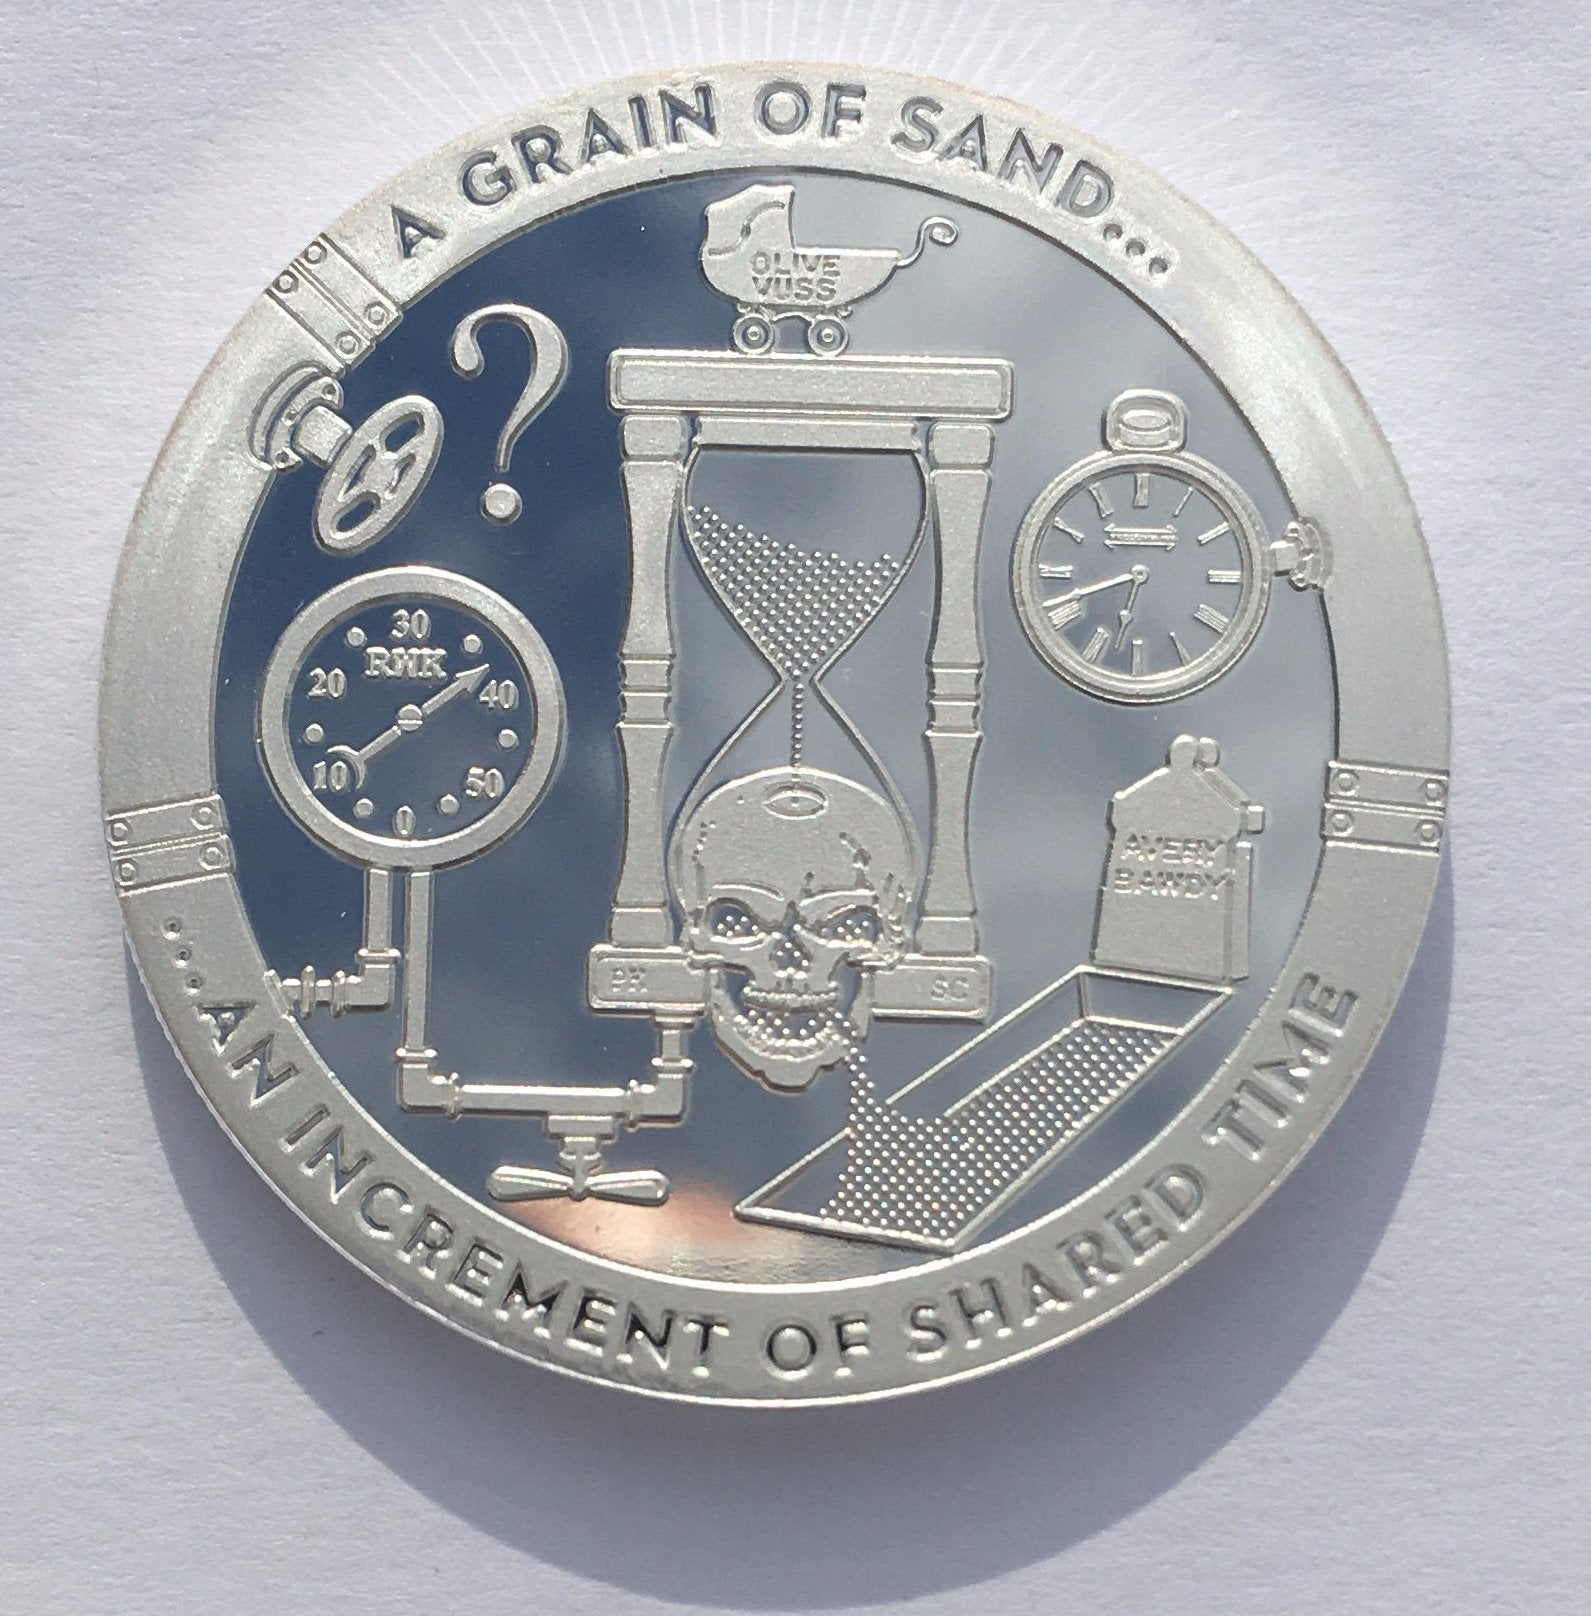 Series A Grain Of Sand 1 oz .999 Silver US Proof-Like Capsuled Round T.I.M.E